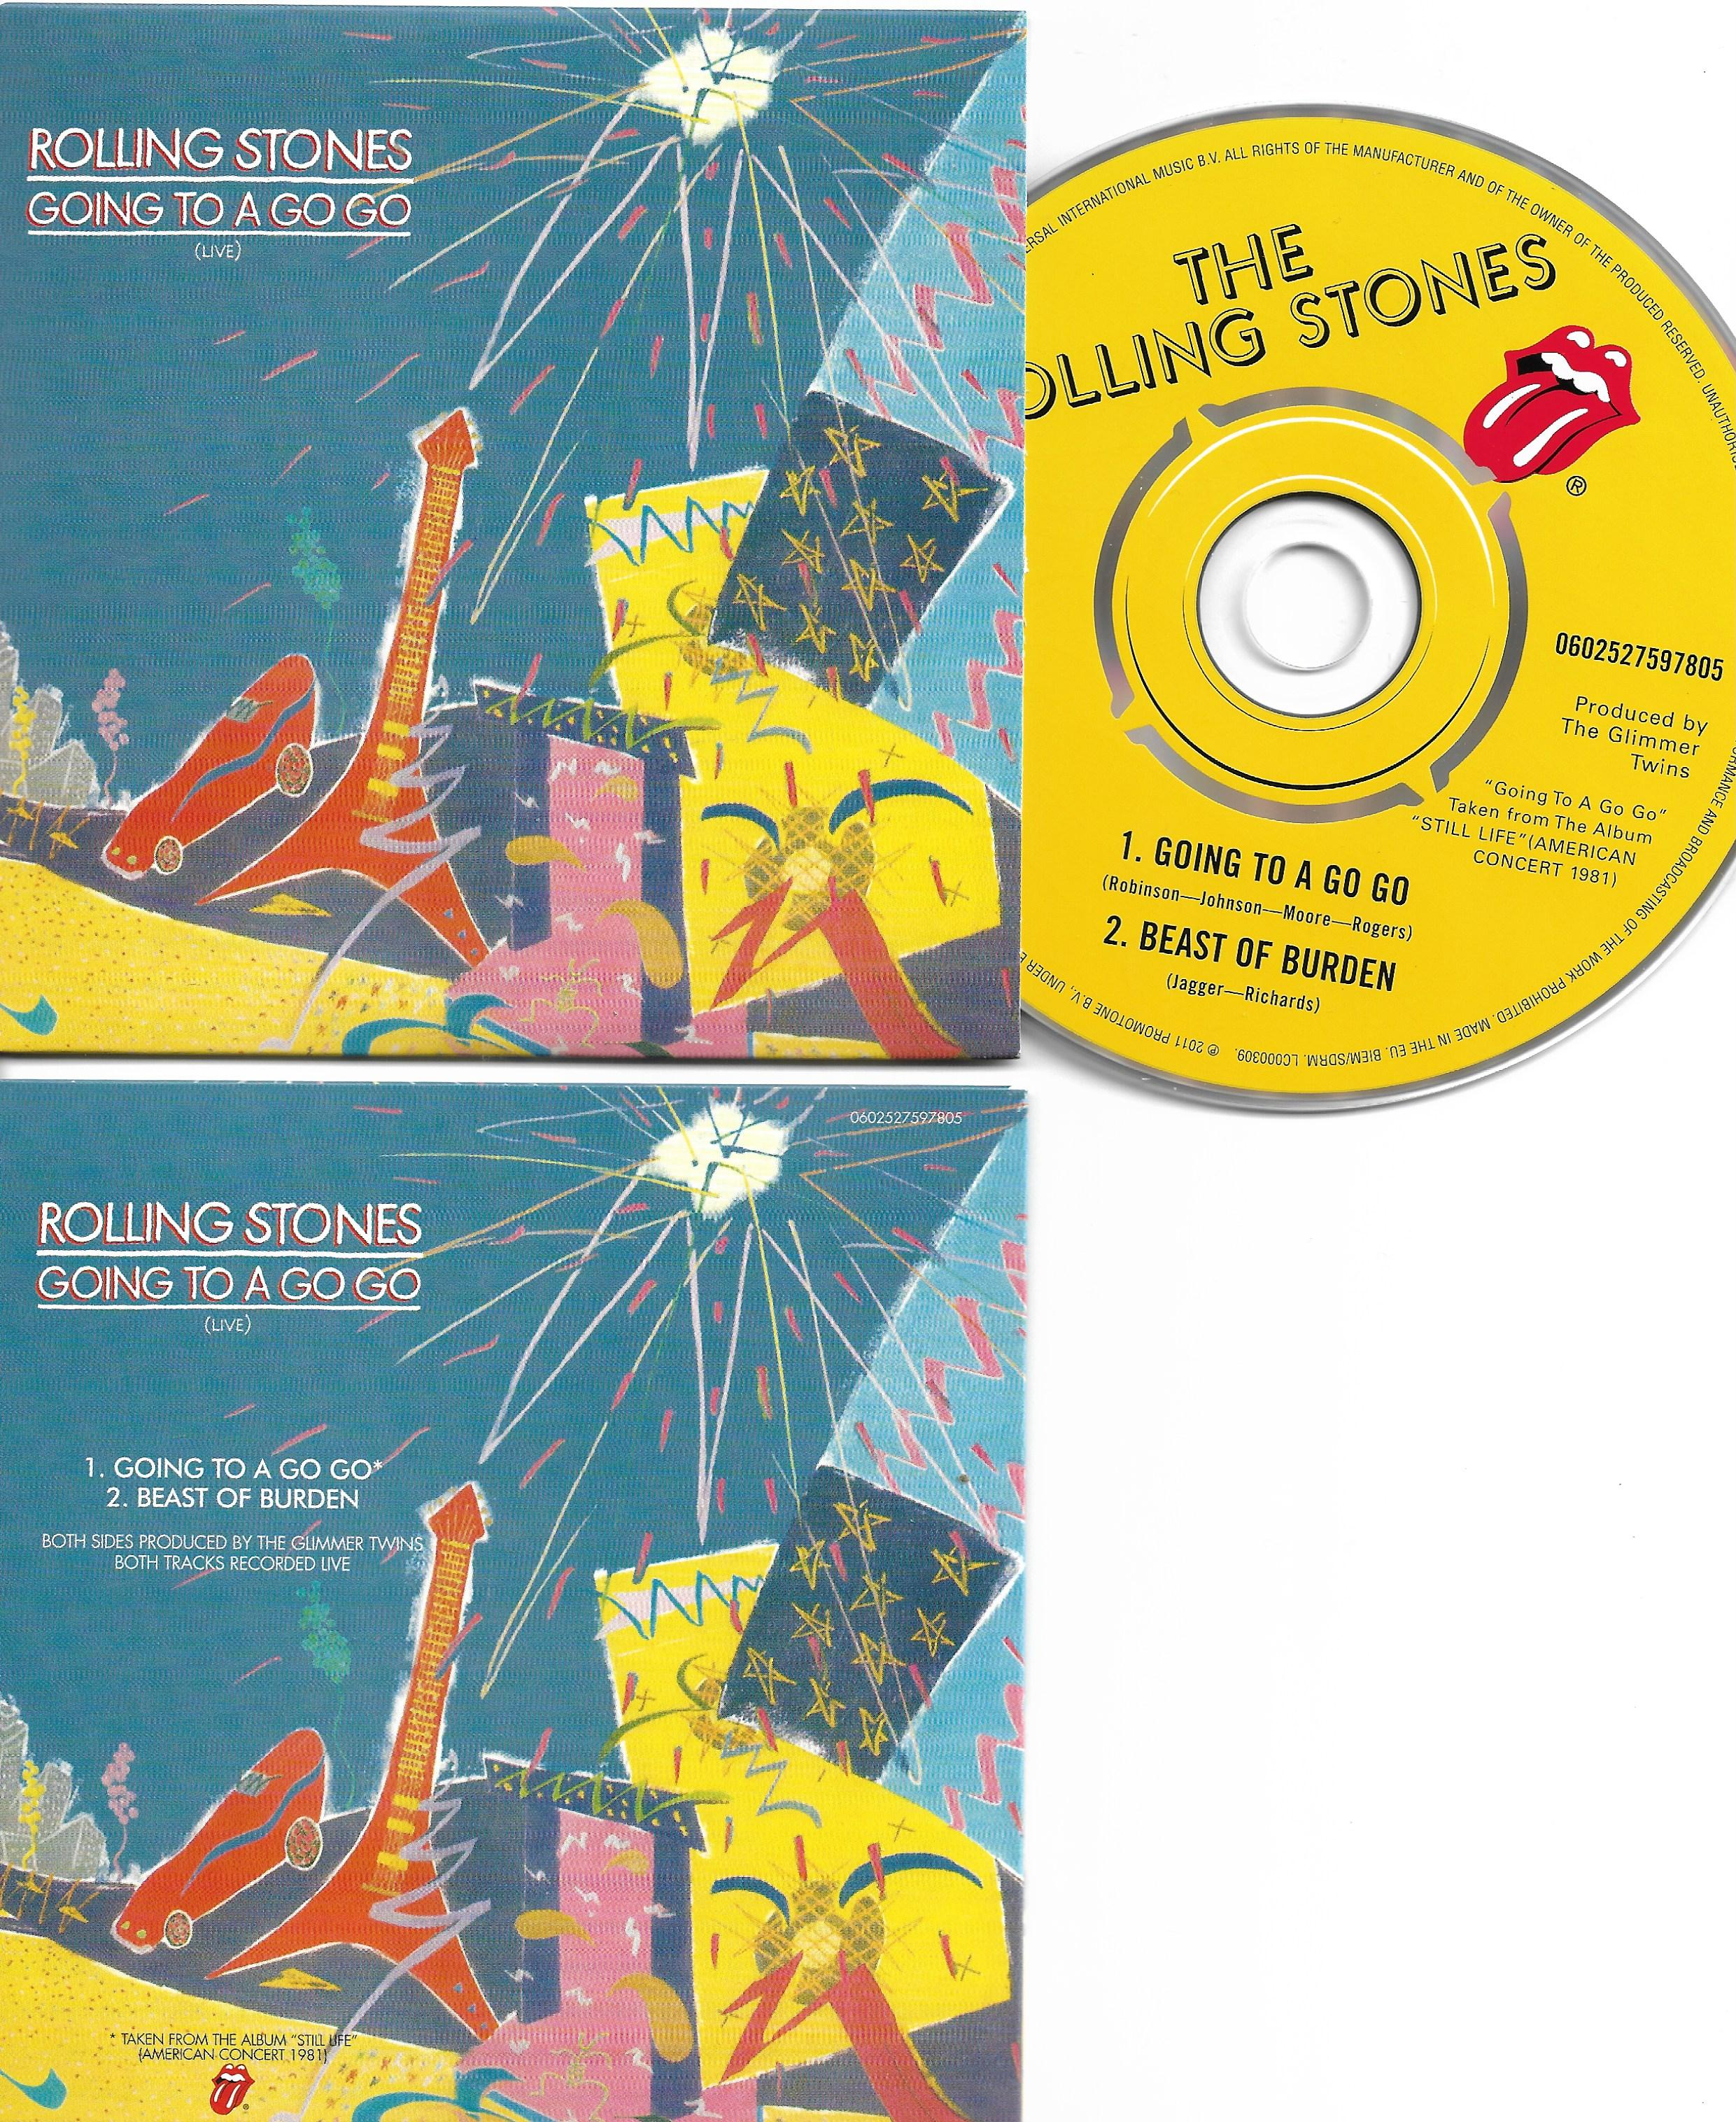 THE ROLLING STONES - Going to a go go 2-track CARD SLEEVE - CD single